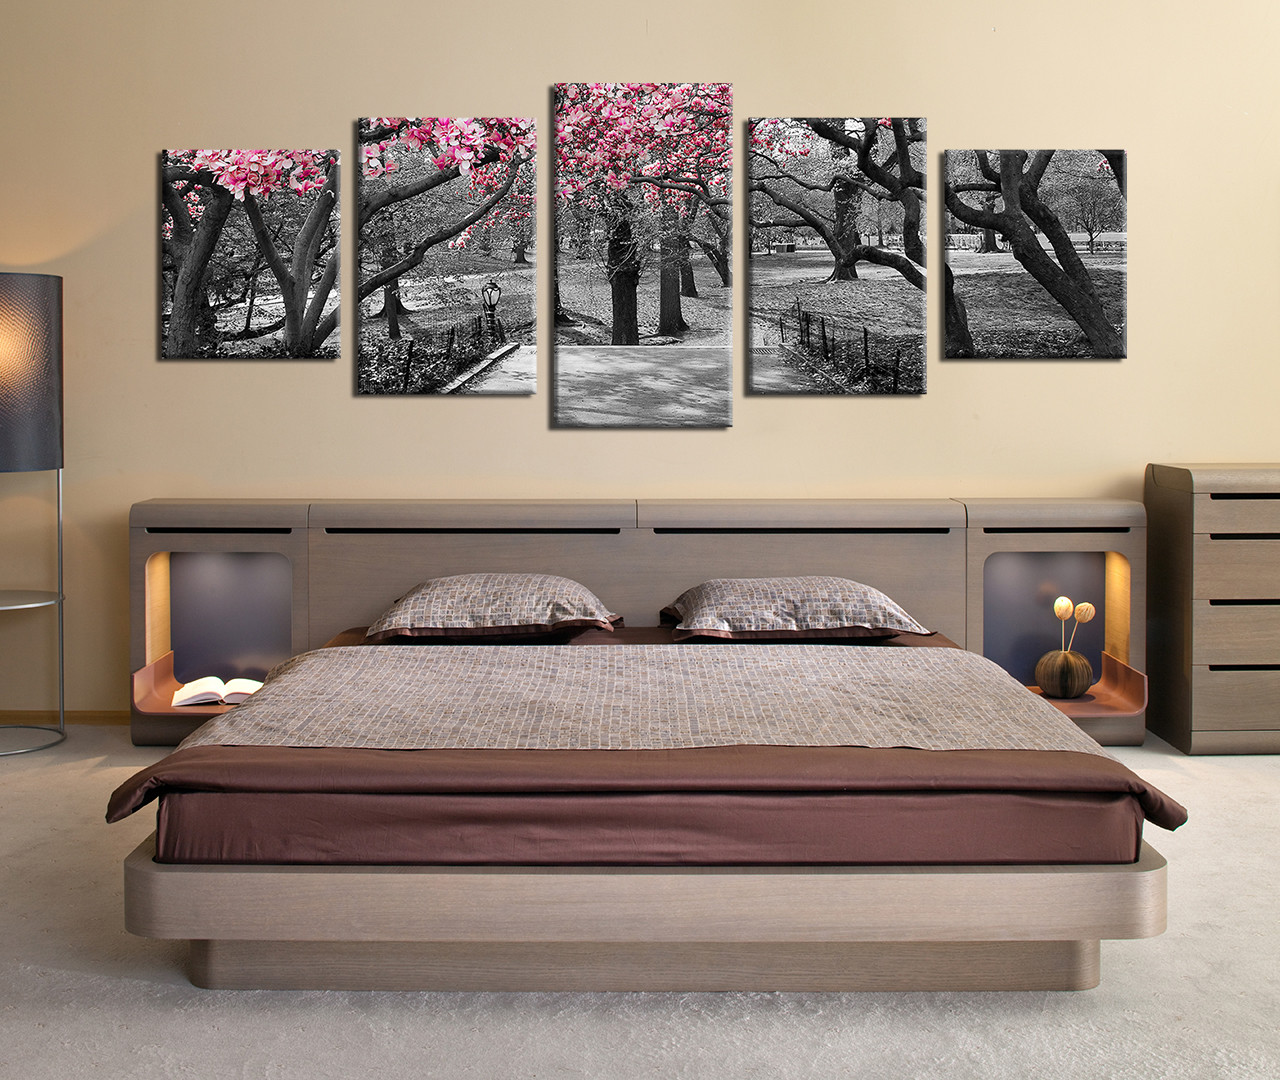 5 Piece Huge Canvas Art, Black And White Trees Art, Bedroom Multi Panel  Canvas